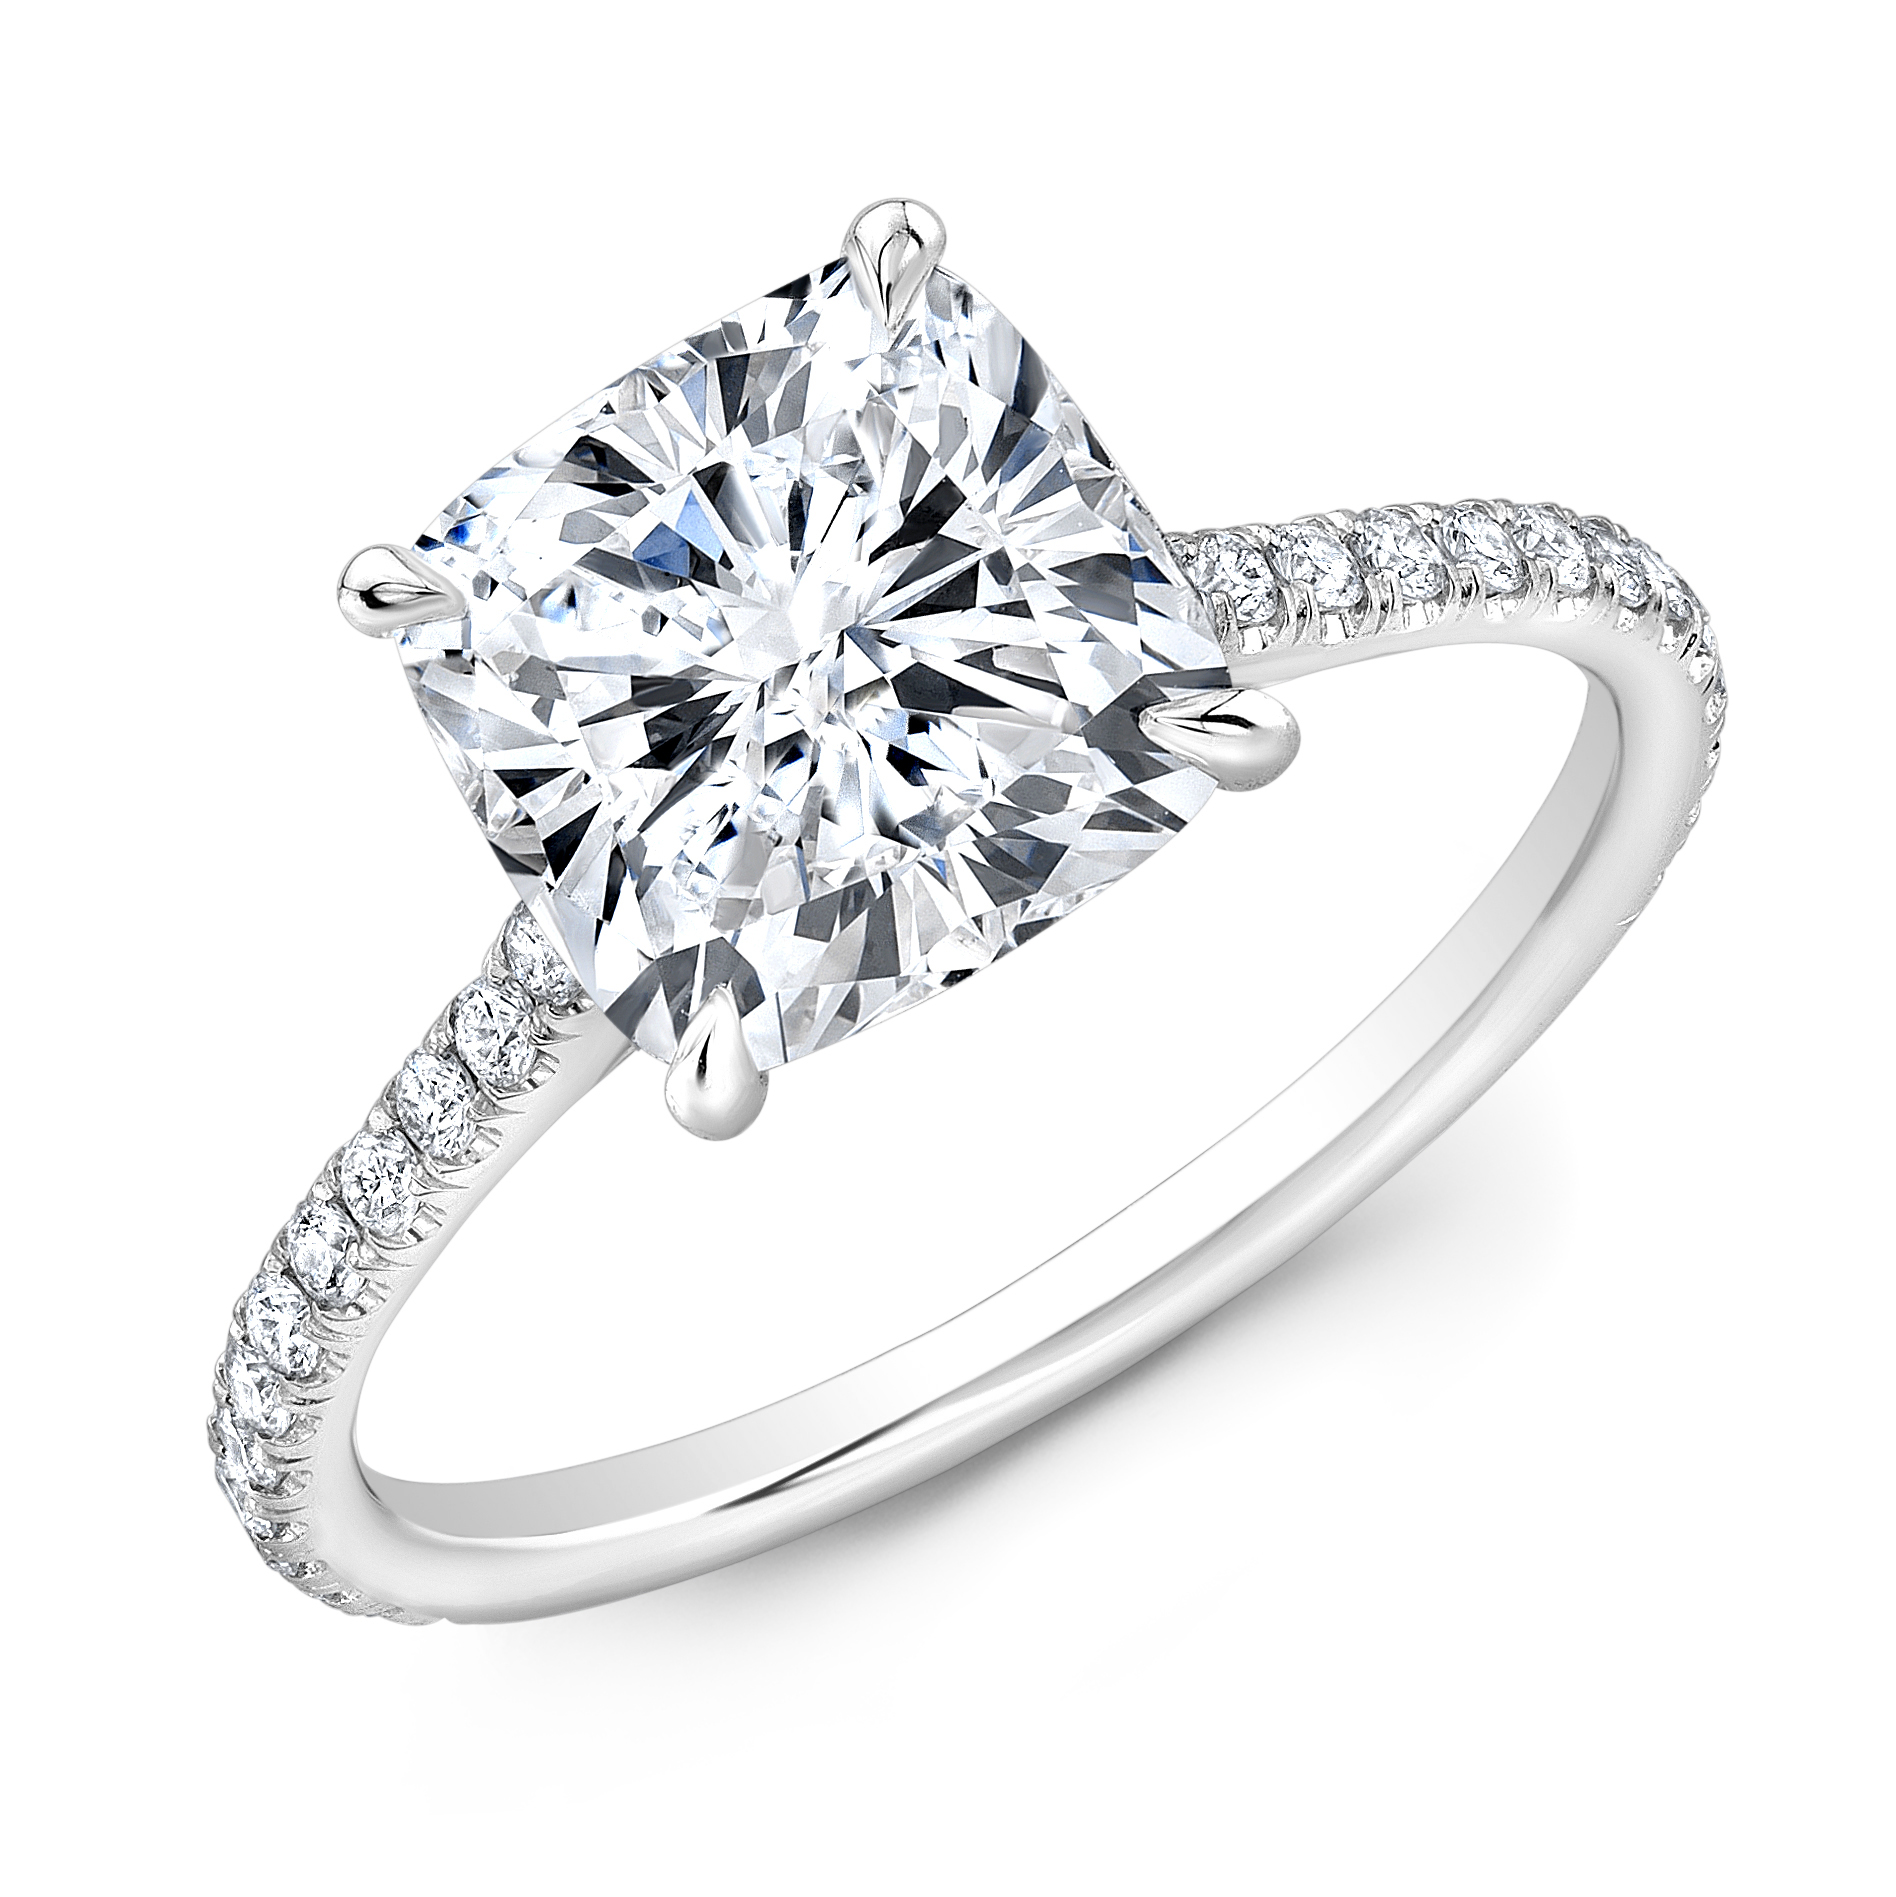 Natural U-Pave Setting Diamond Engagement Ring